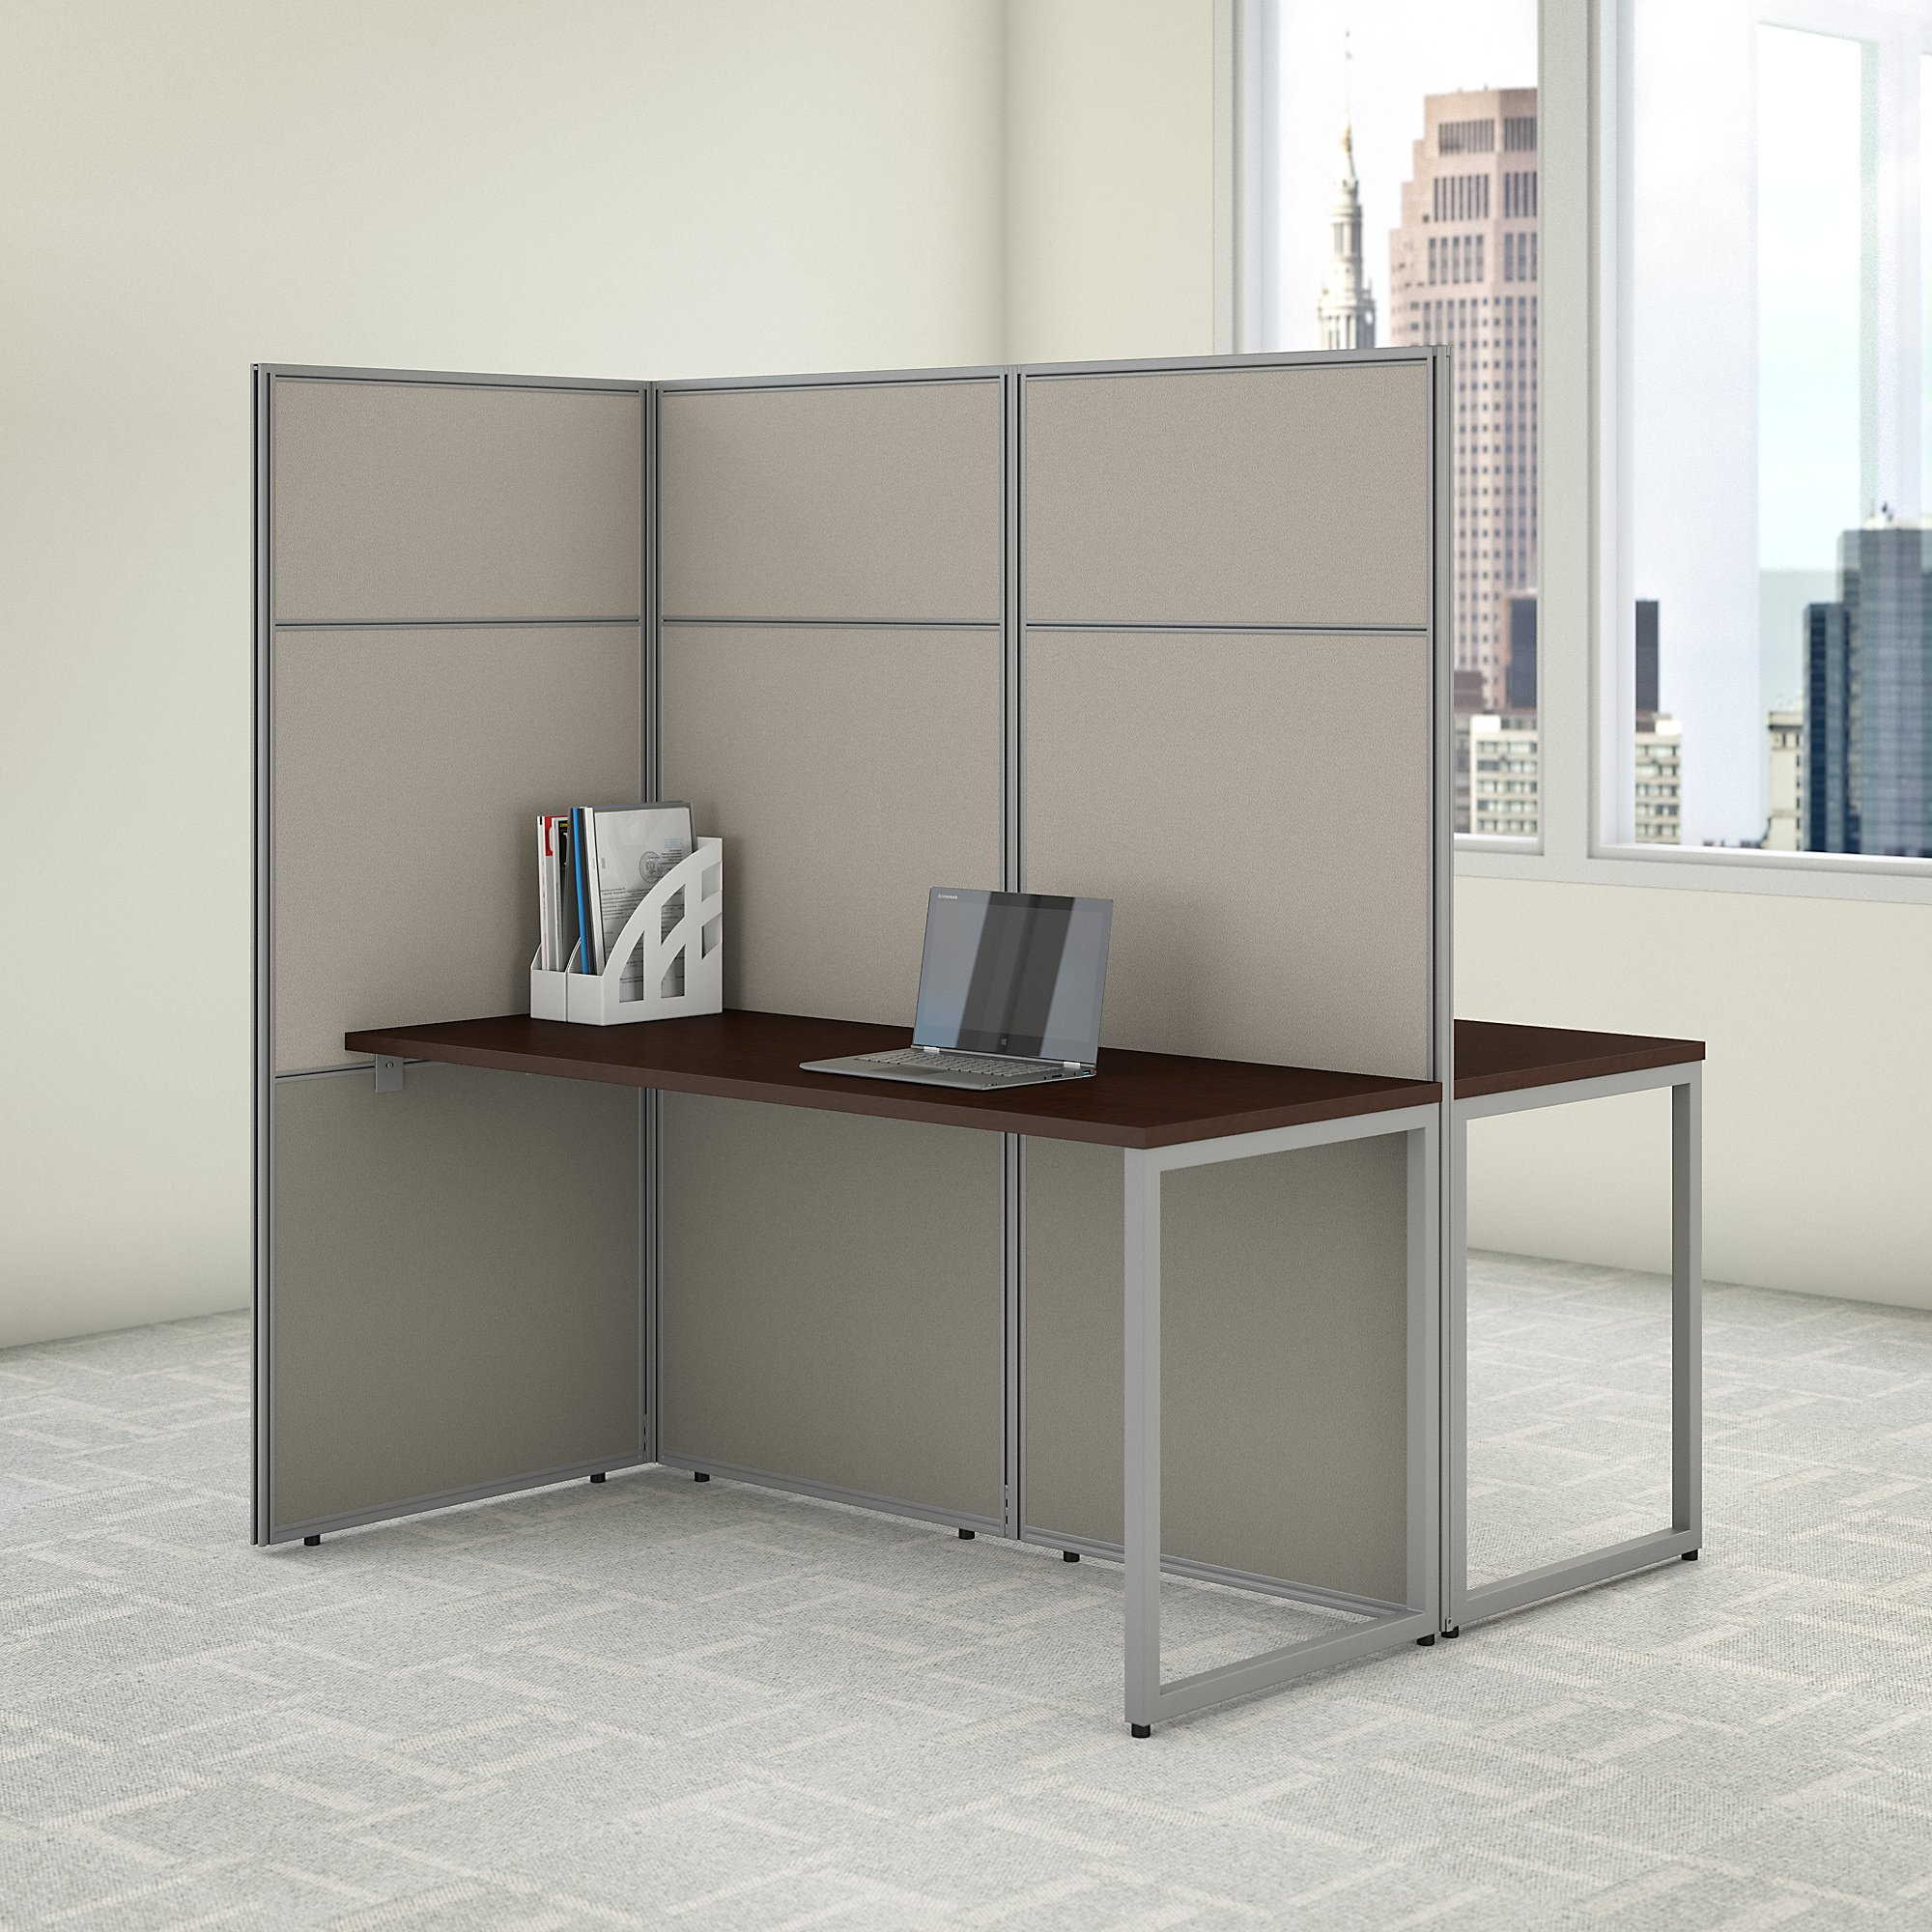 easy office 2 person privacy workstation in mocha cherry